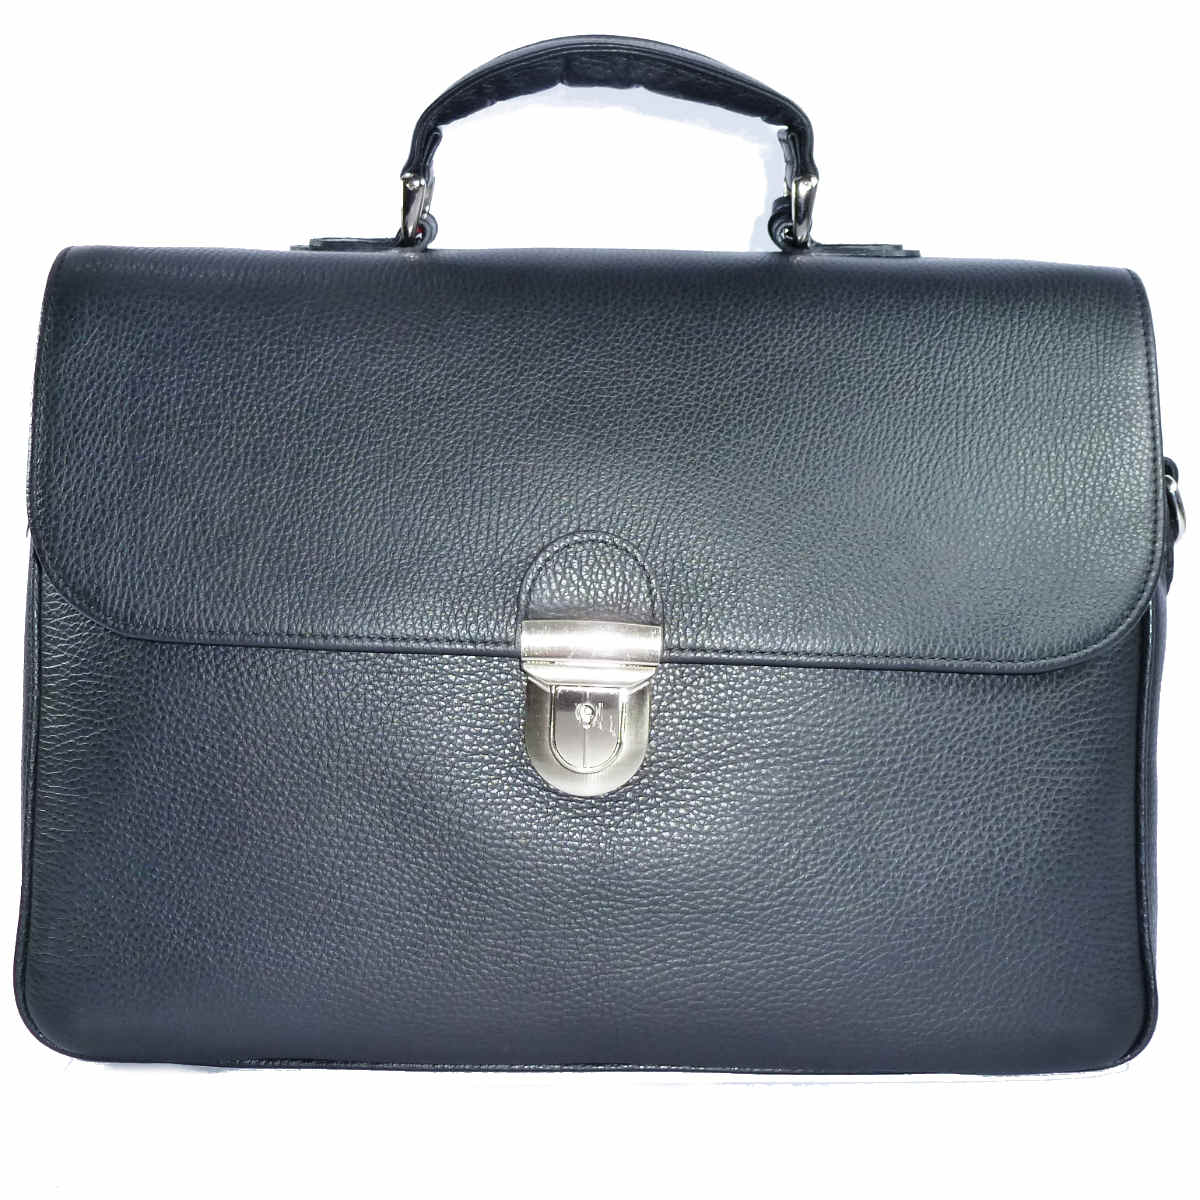 2767 BRIEFCASE 2 COMPARTMENTS by Bottega Fiorentina